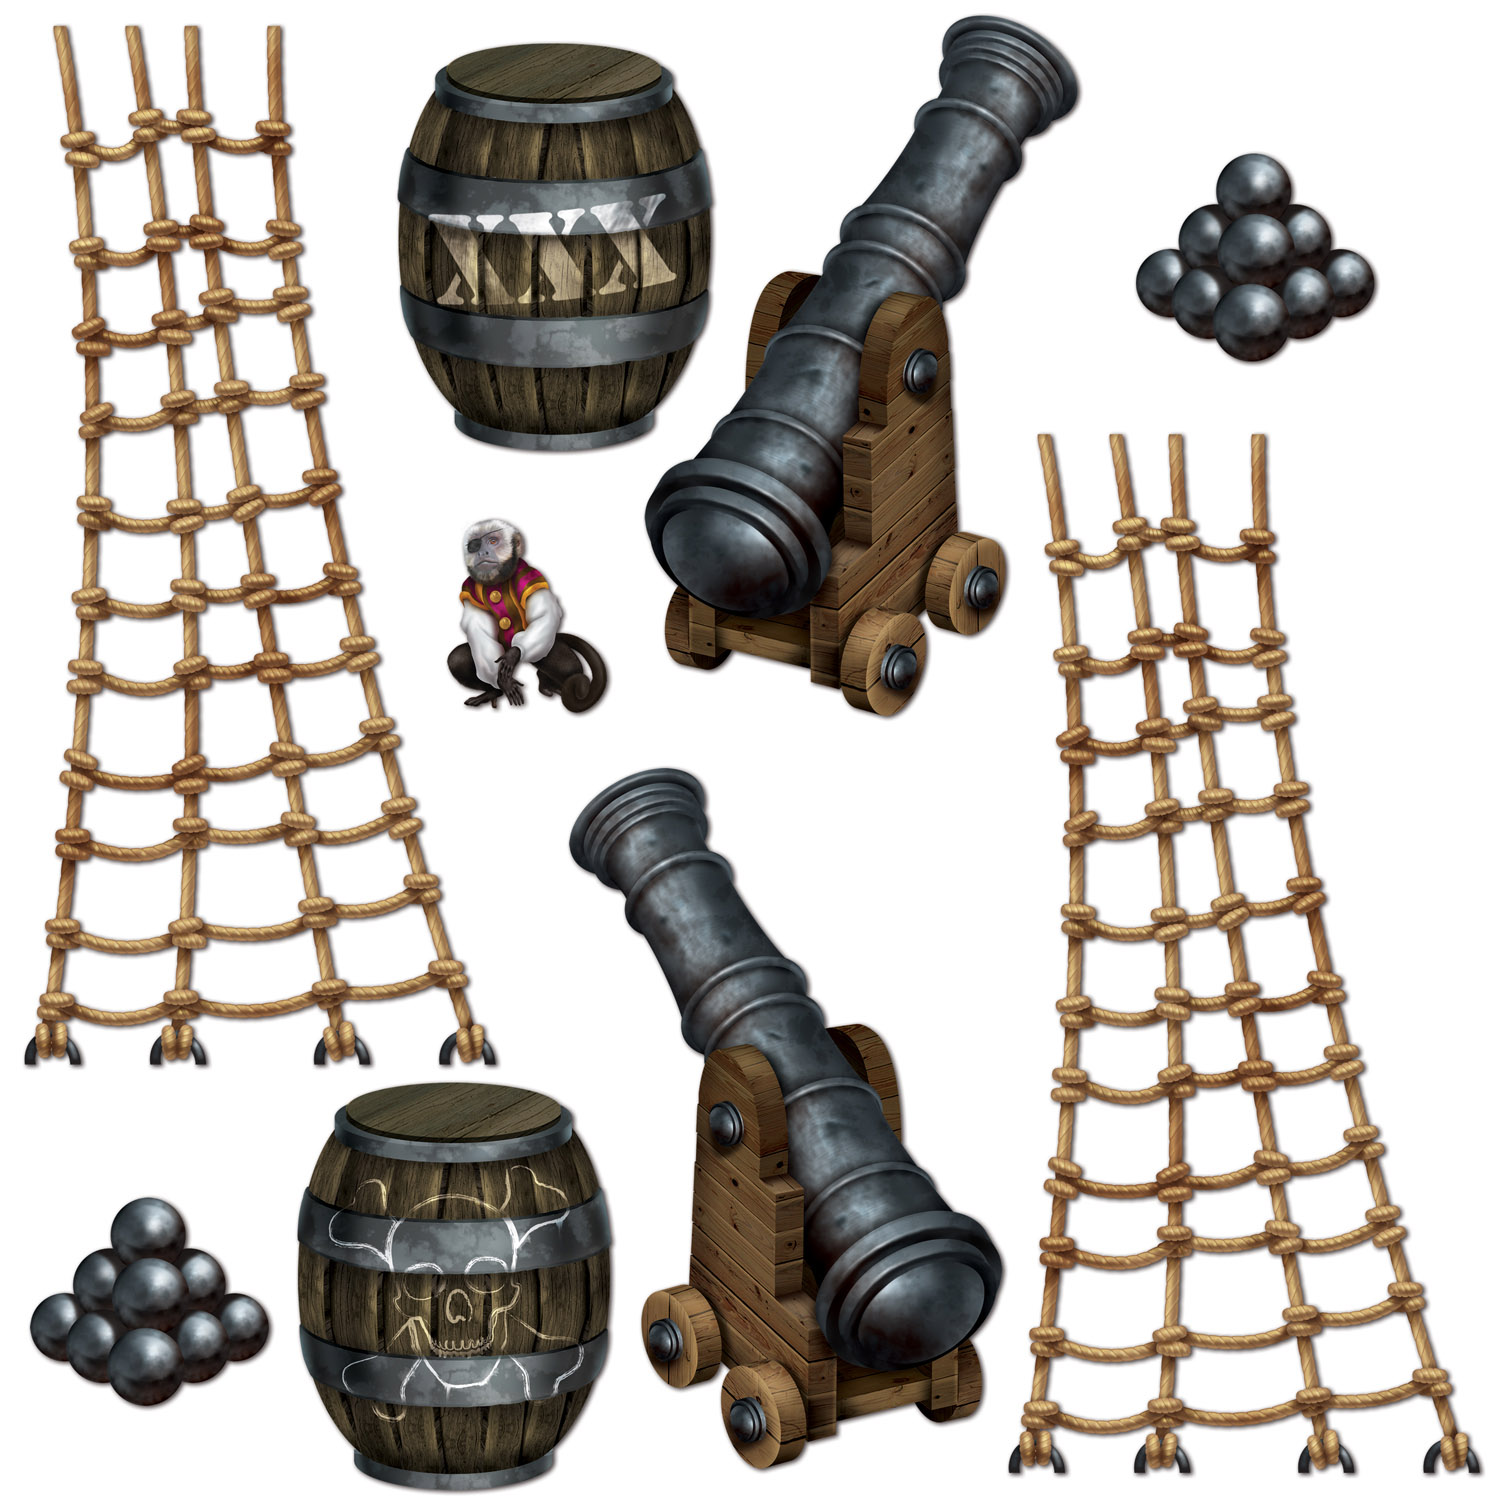 Pirate Ship Props (Pack of 108) Pirate Ship, Backdrop, Party Decor, Wholesale Pirate Decorations, Inexpensive party supplies, Cheap party goods, Pirate themed ideas, Birthday pirate, Cheap birthday, Pirate deck accessories